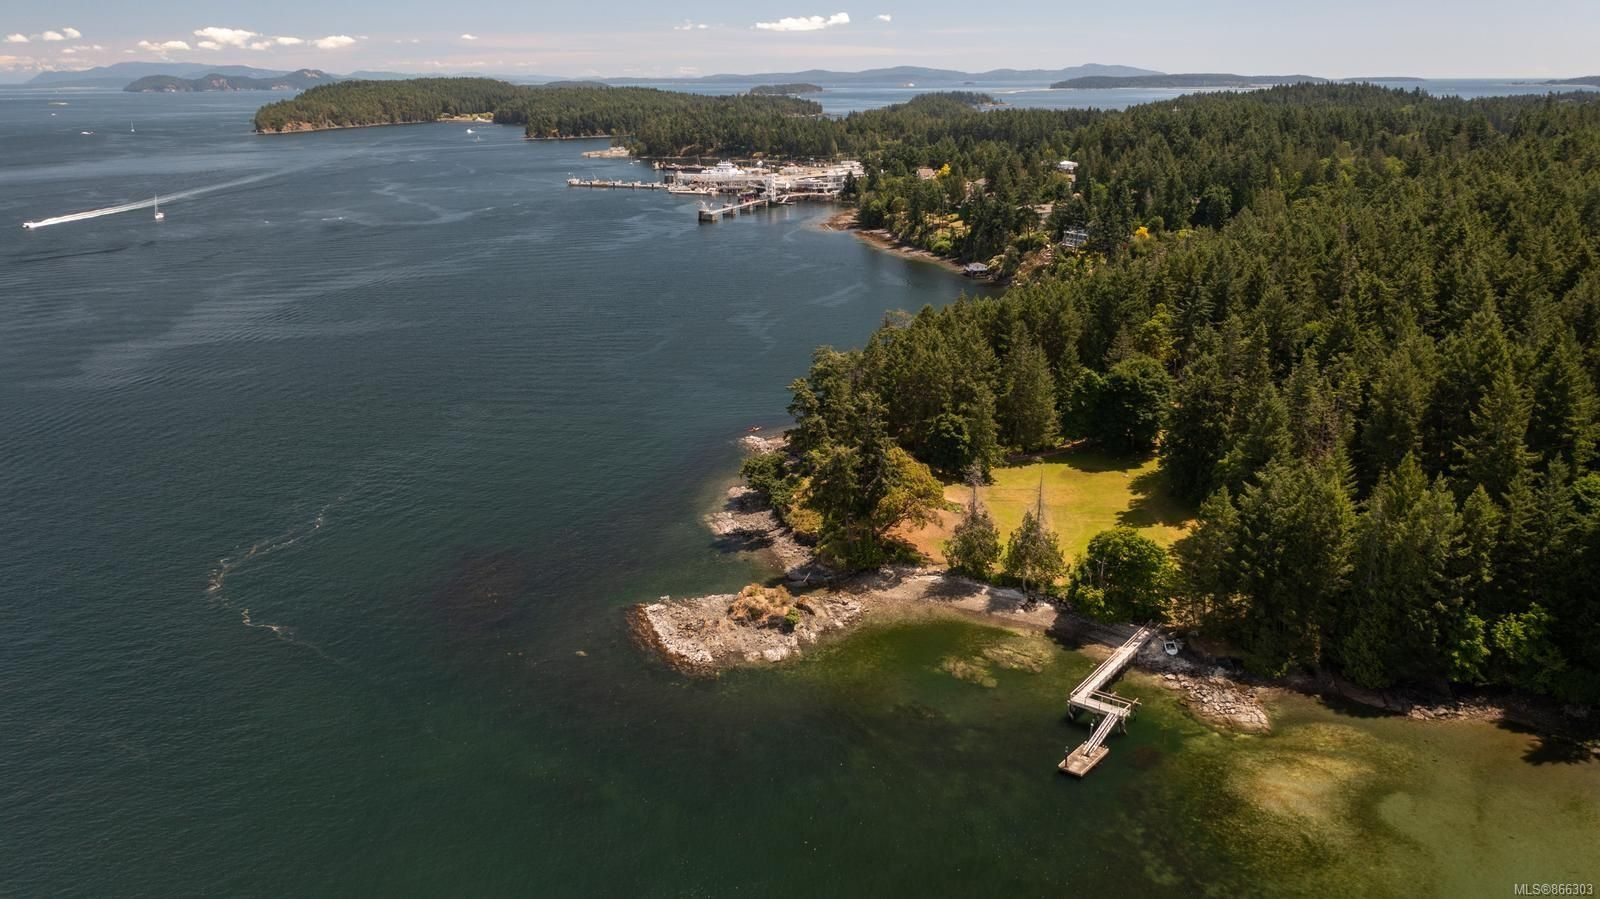 Main Photo: 1850 Lands End Rd in : NS Lands End House for sale (North Saanich)  : MLS®# 866303